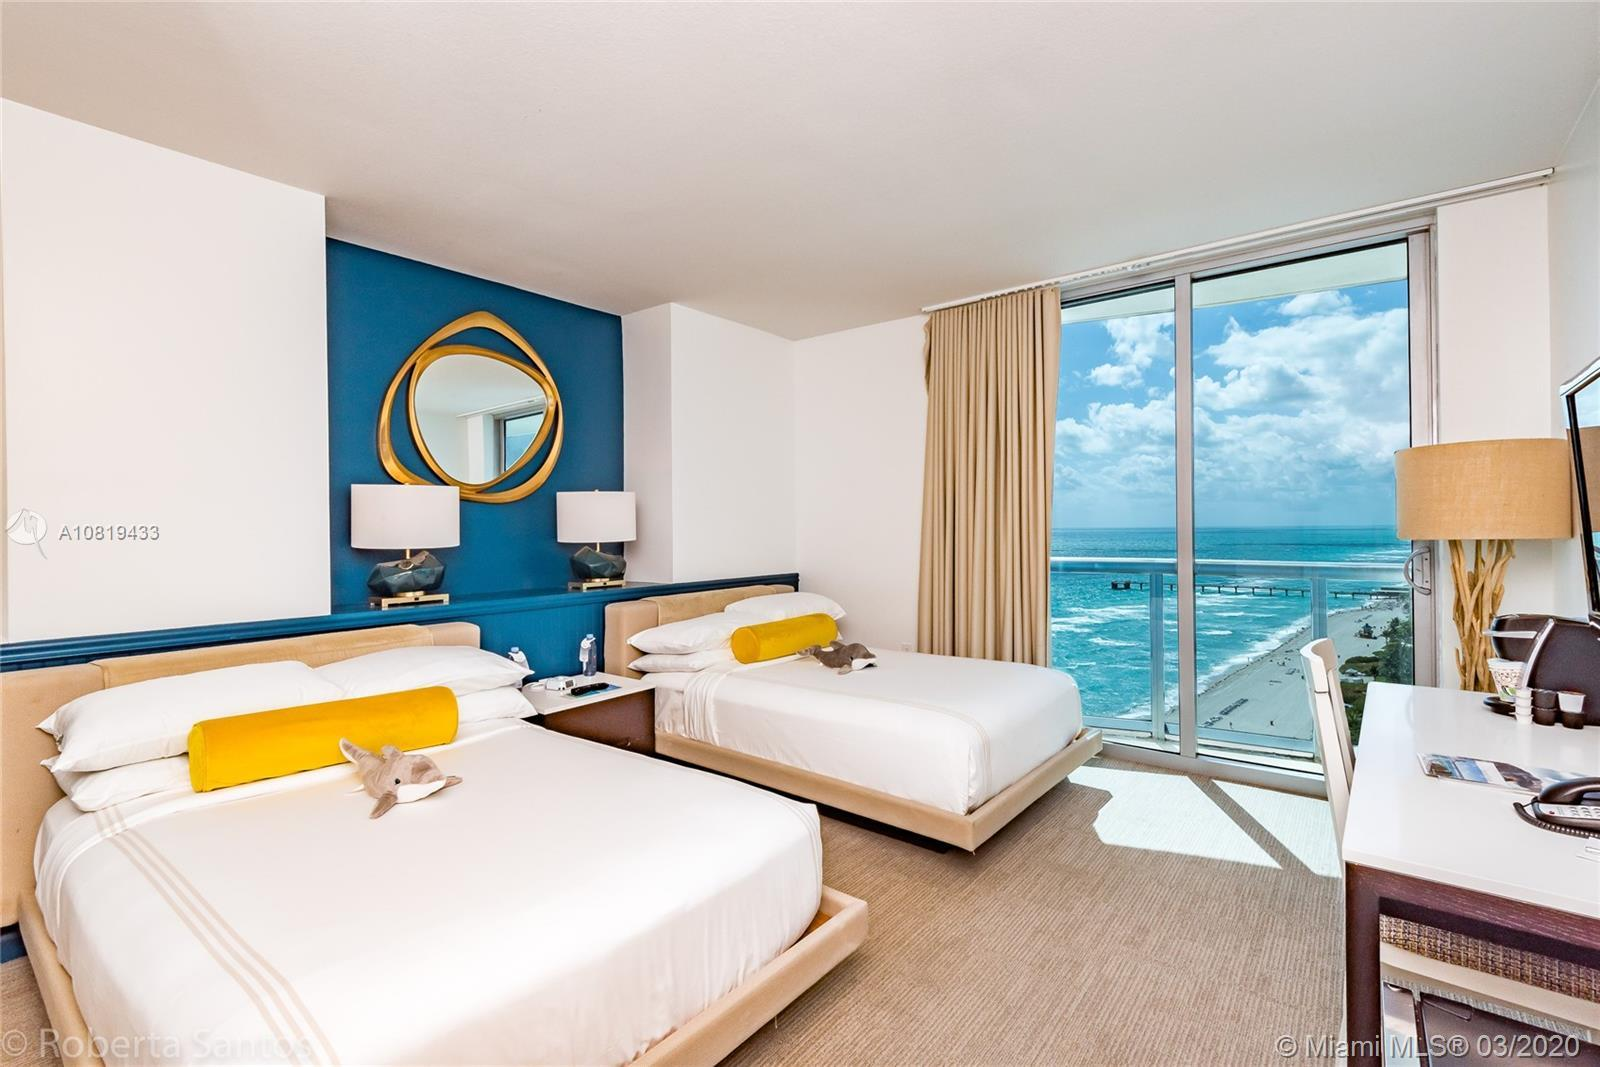 Beautiful and luxurious unit at the Beach with ocean view. Furnished 2/2 unit at the amazing oceanfr